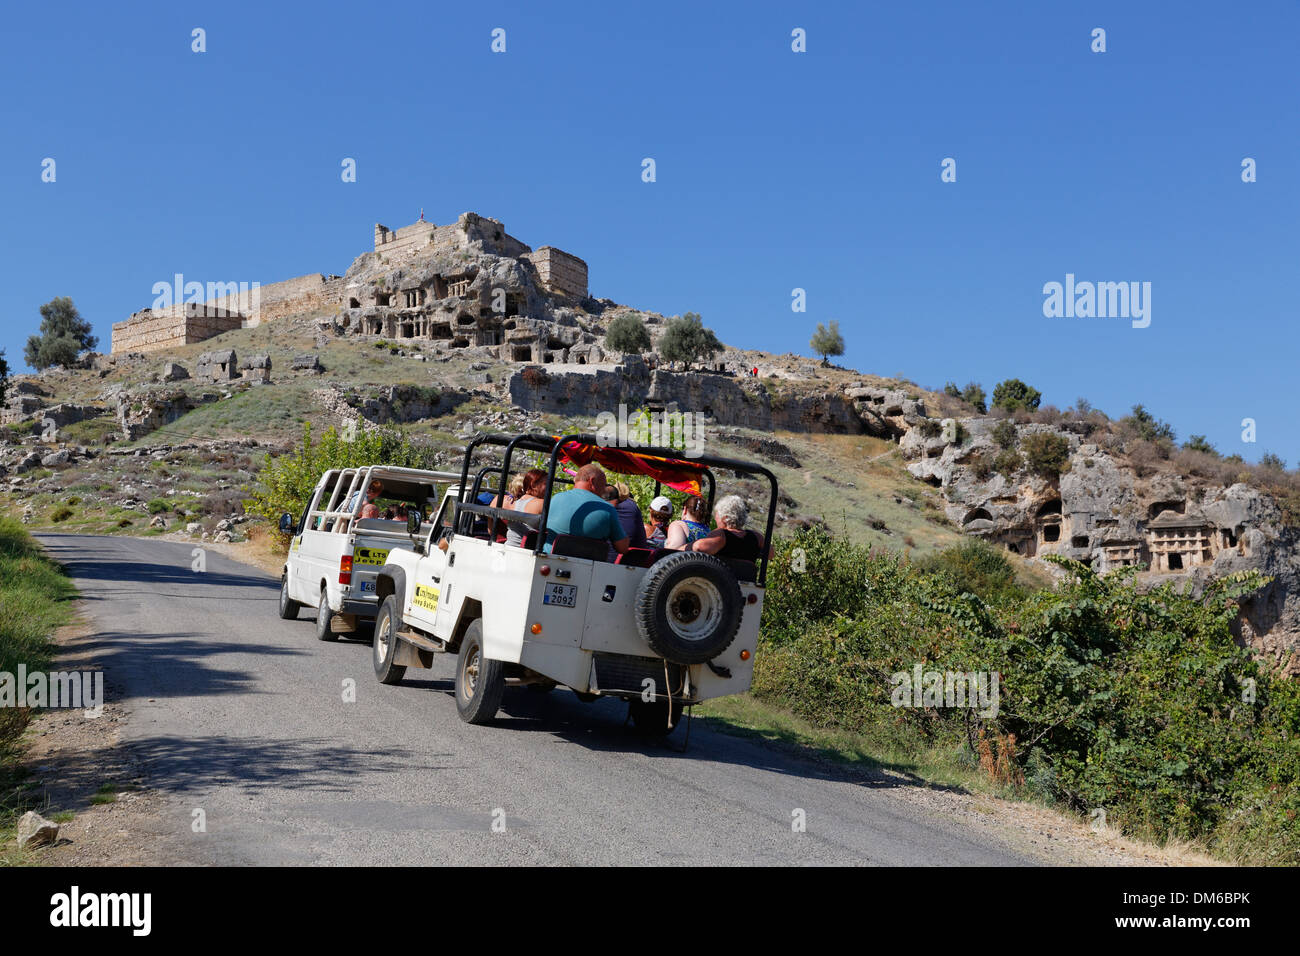 Jeep safari, ancient city of Tlos in the Xanthos Valley, Muğla Province, Lycia, Aegean, Turkey - Stock Image